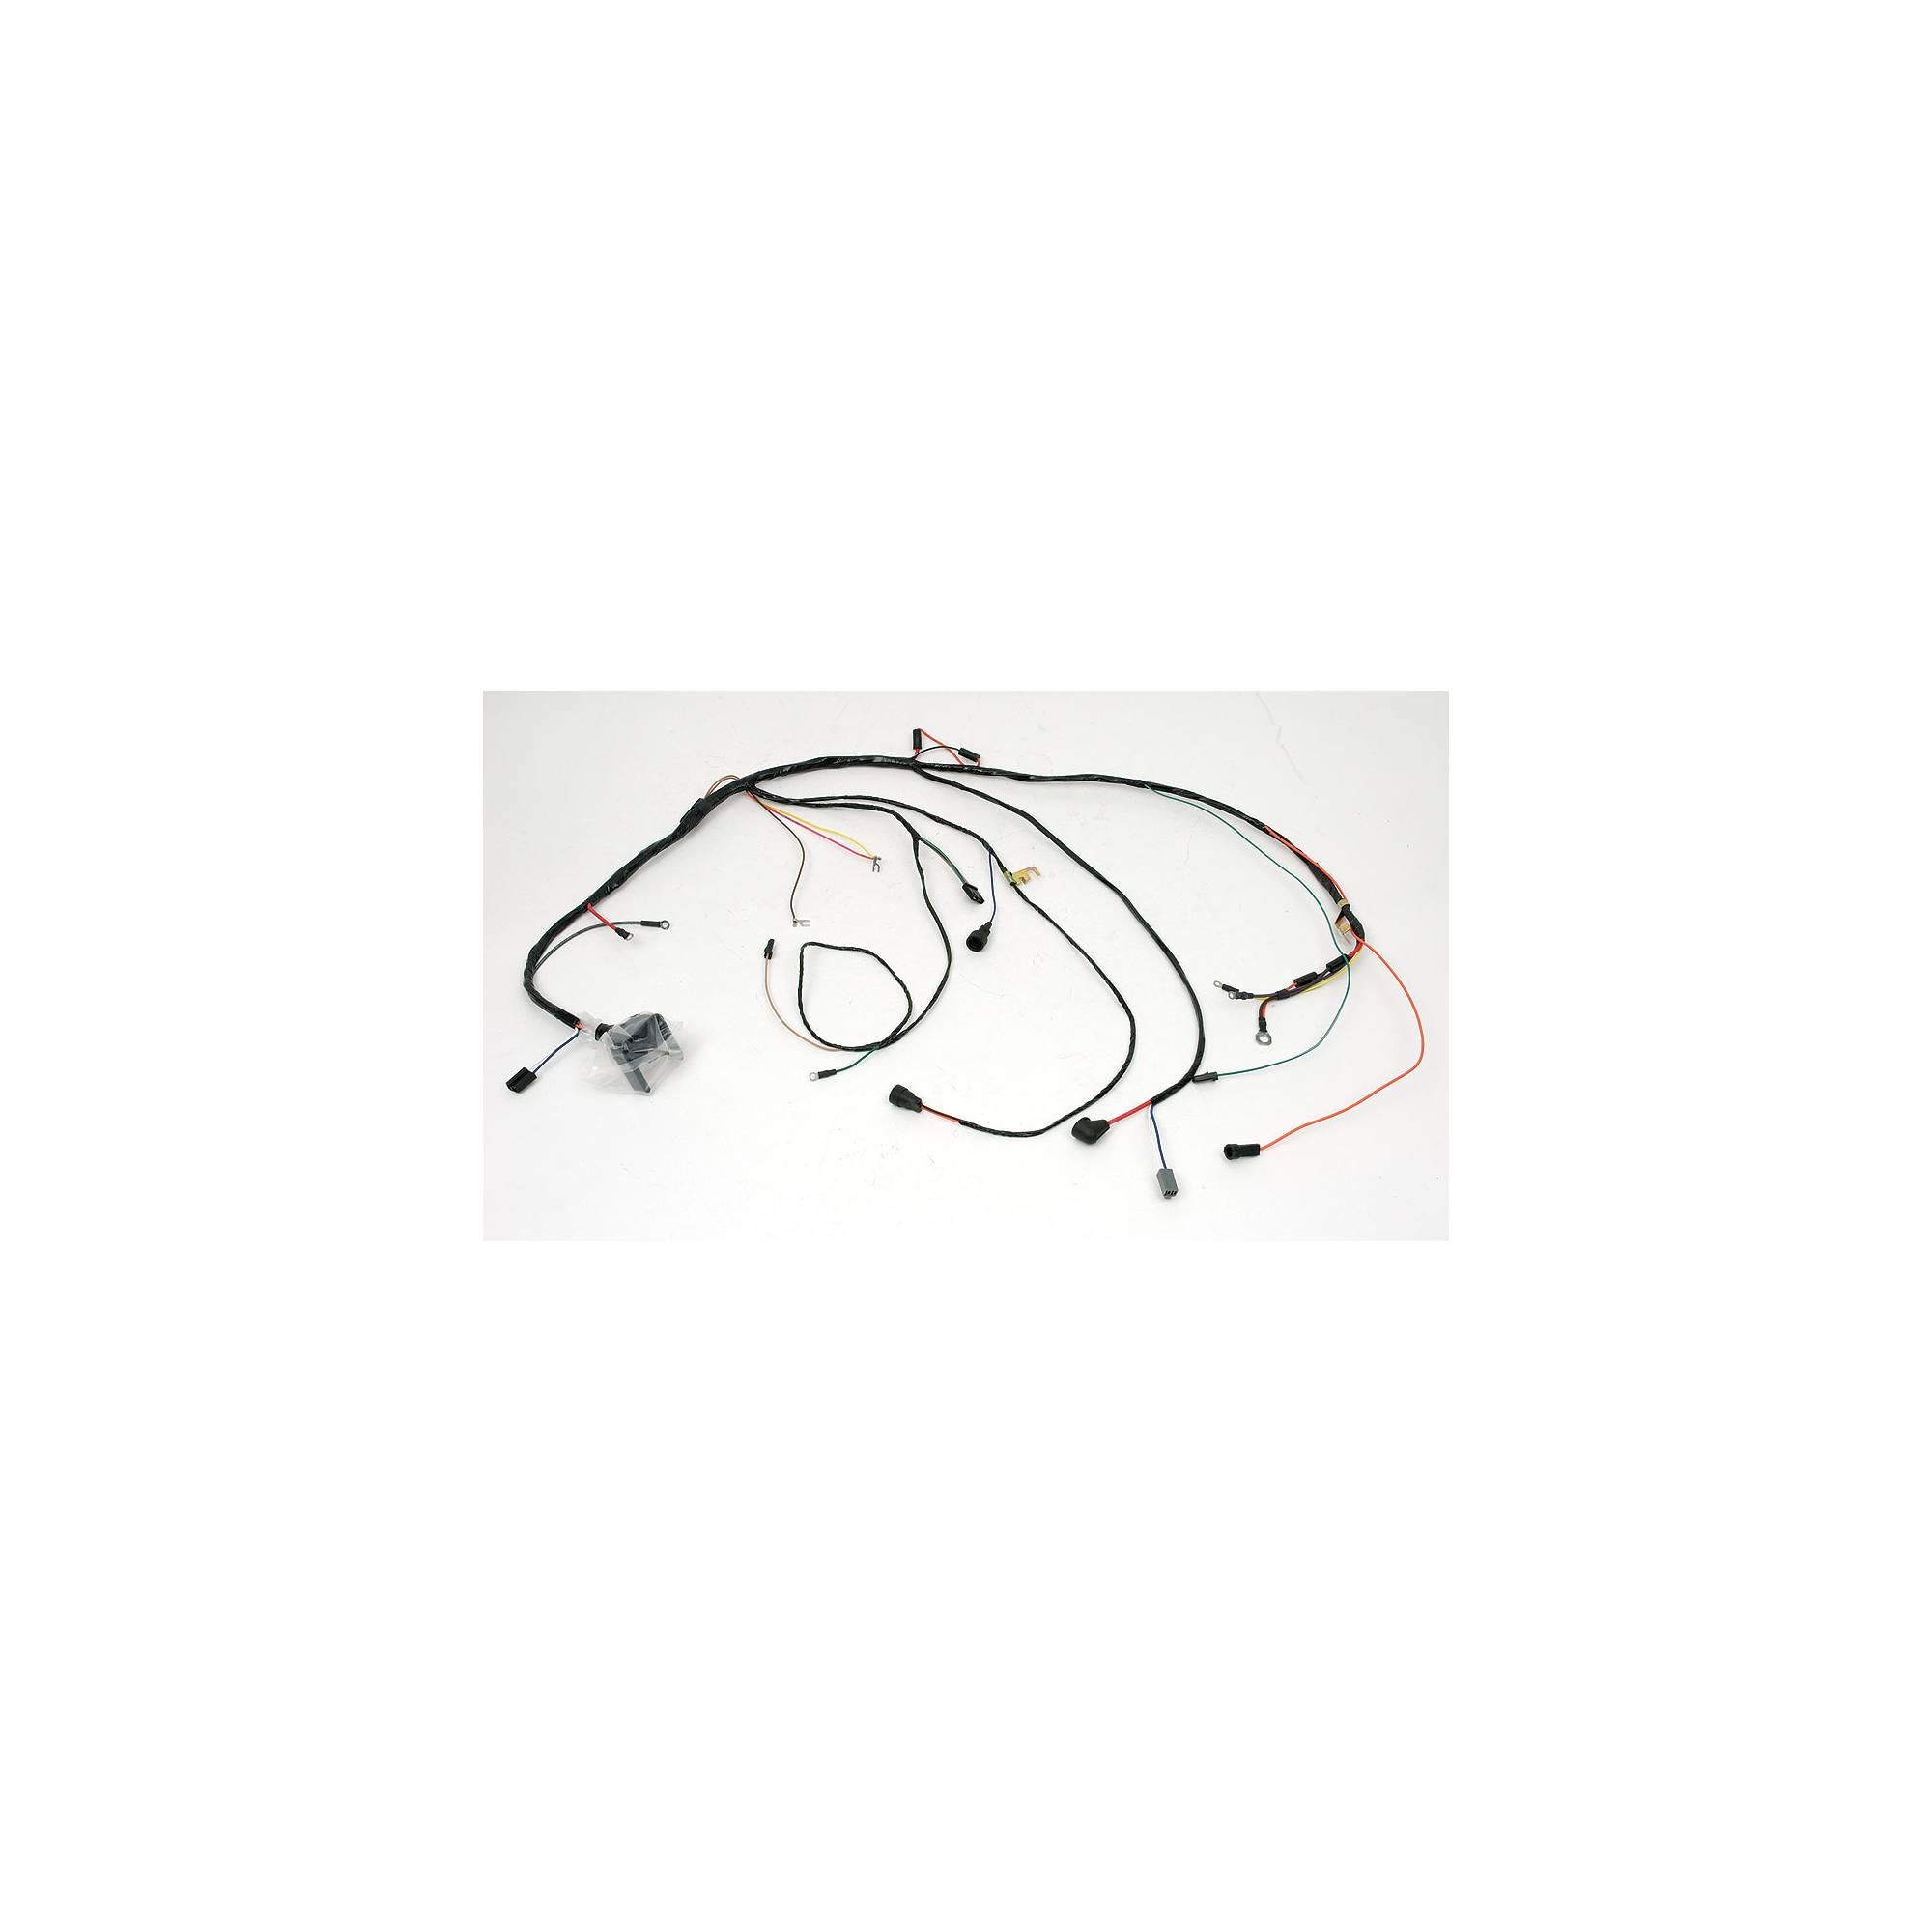 Eckler S Premier Products 50 Chevelle Engine Wiring